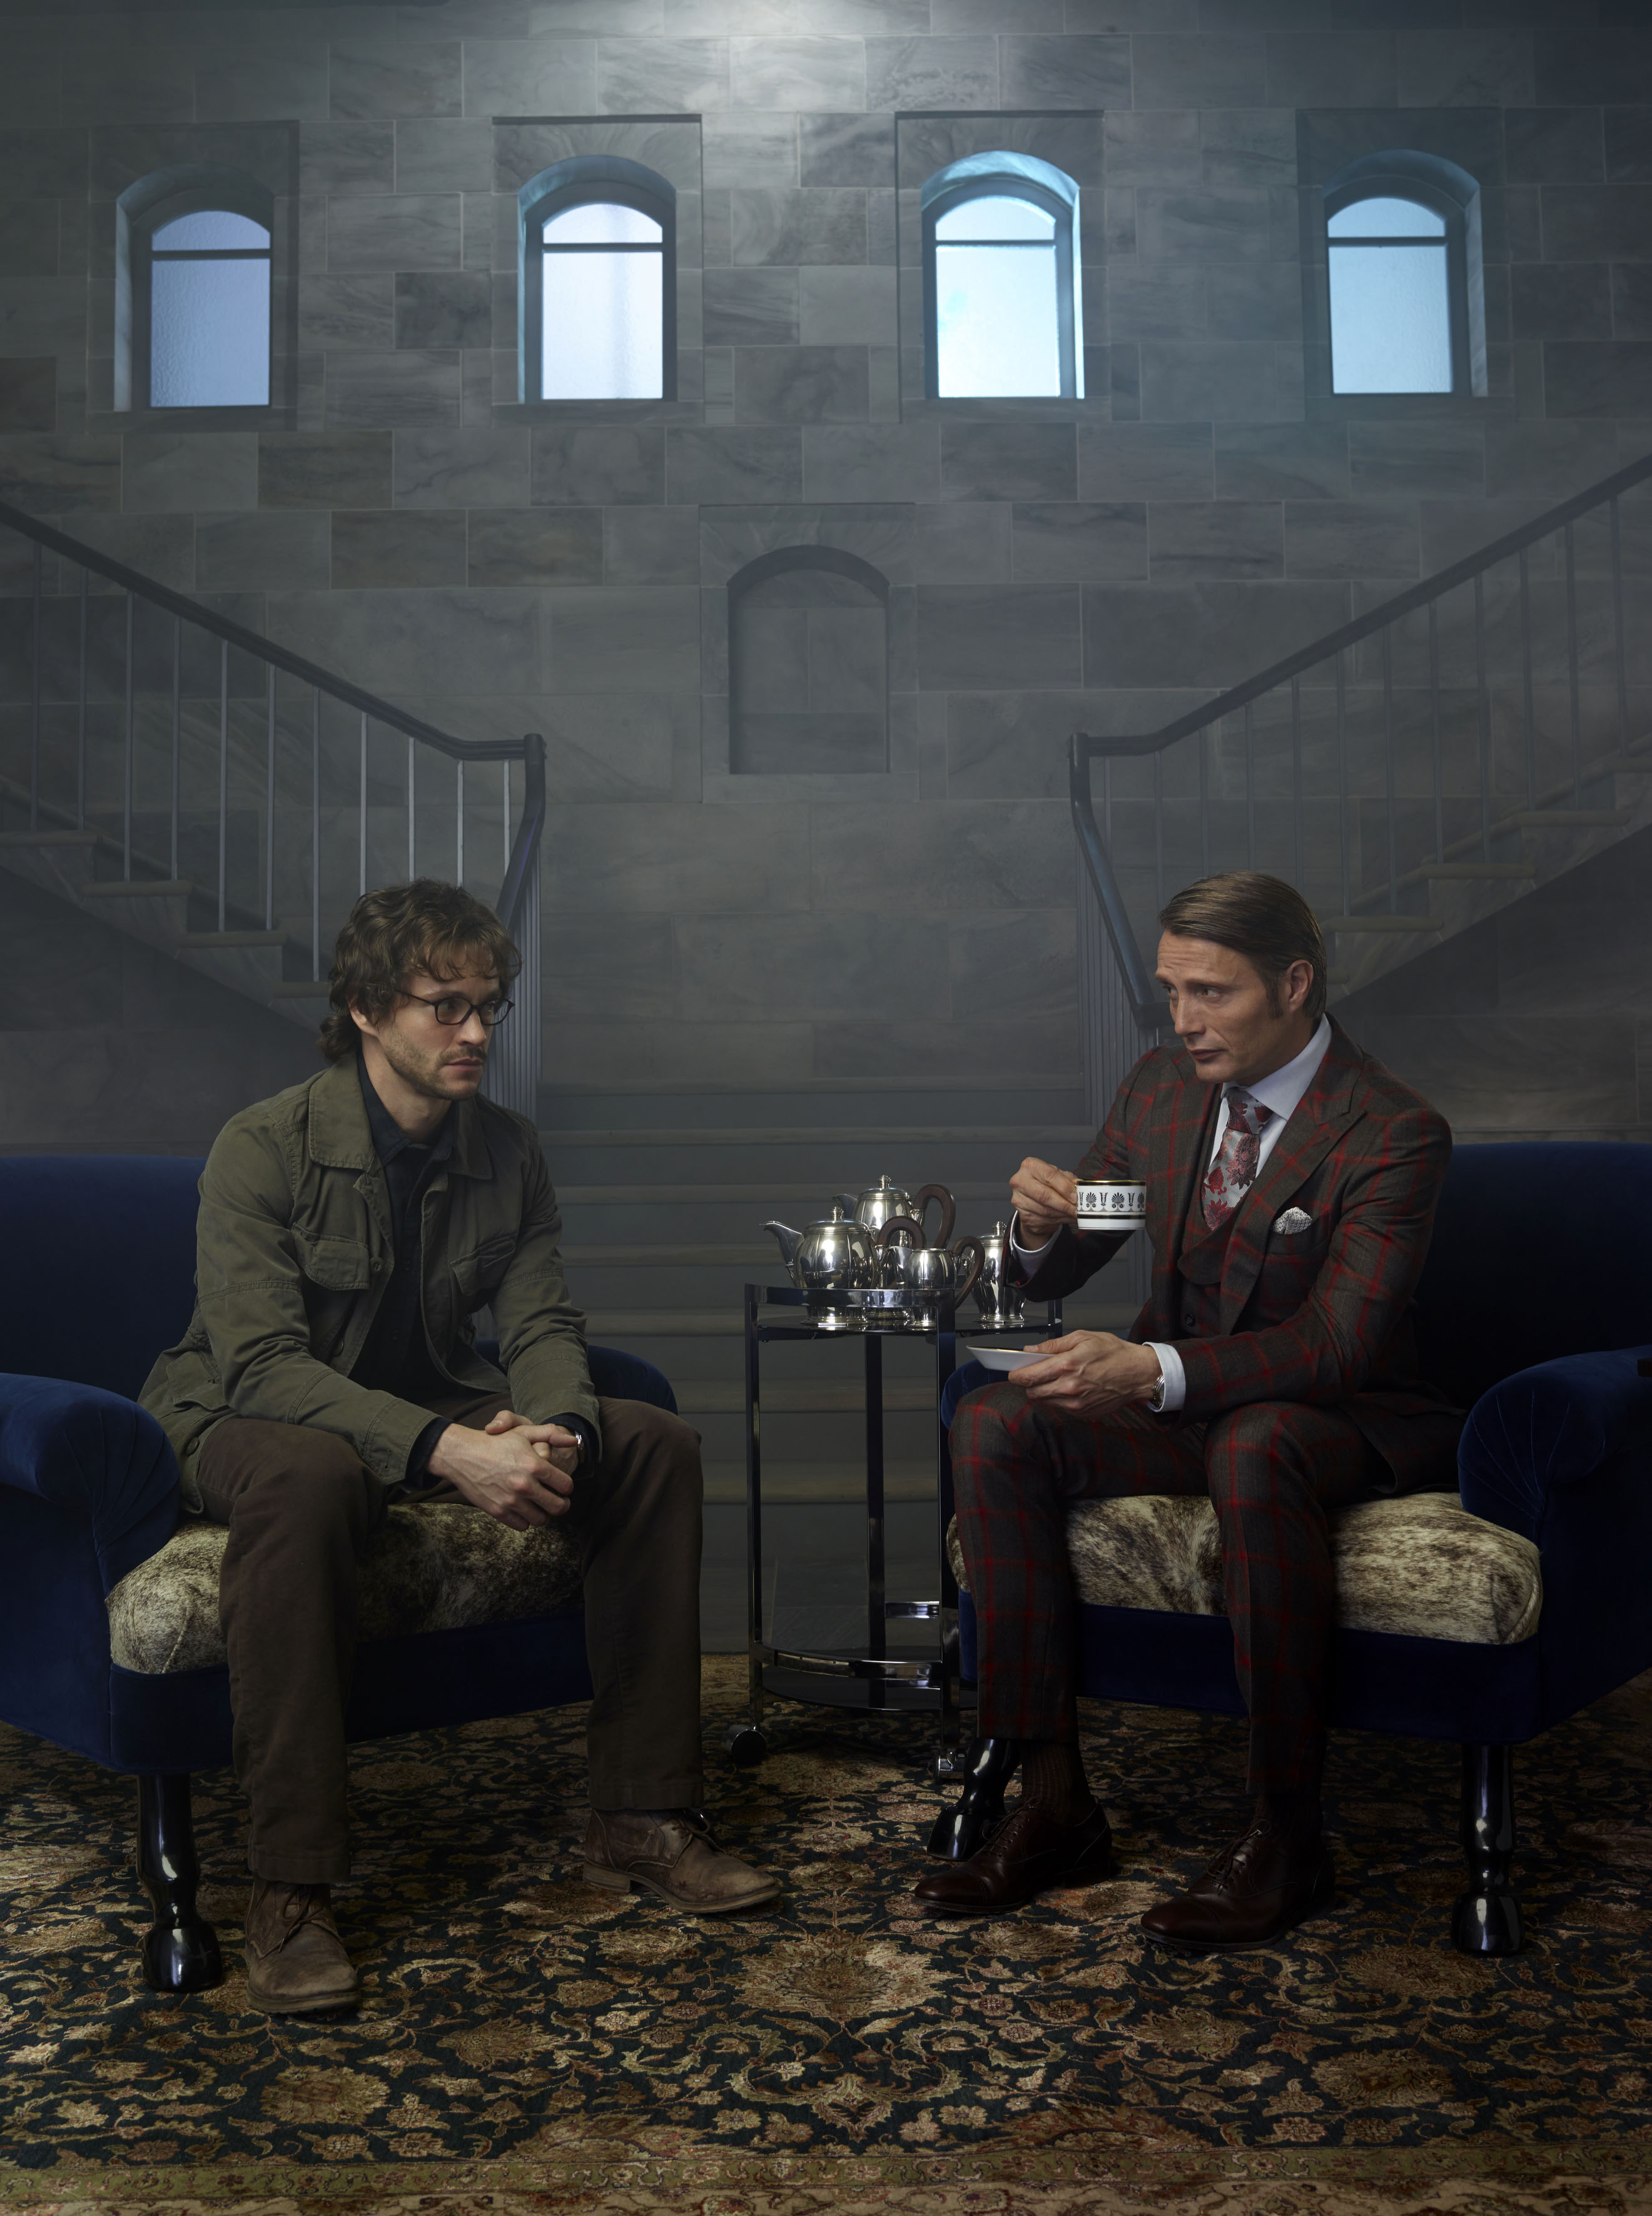 Hannibal lecter and will graham hannibal tv series photo 36948611 fanpop - Hannibal tv series actors ...